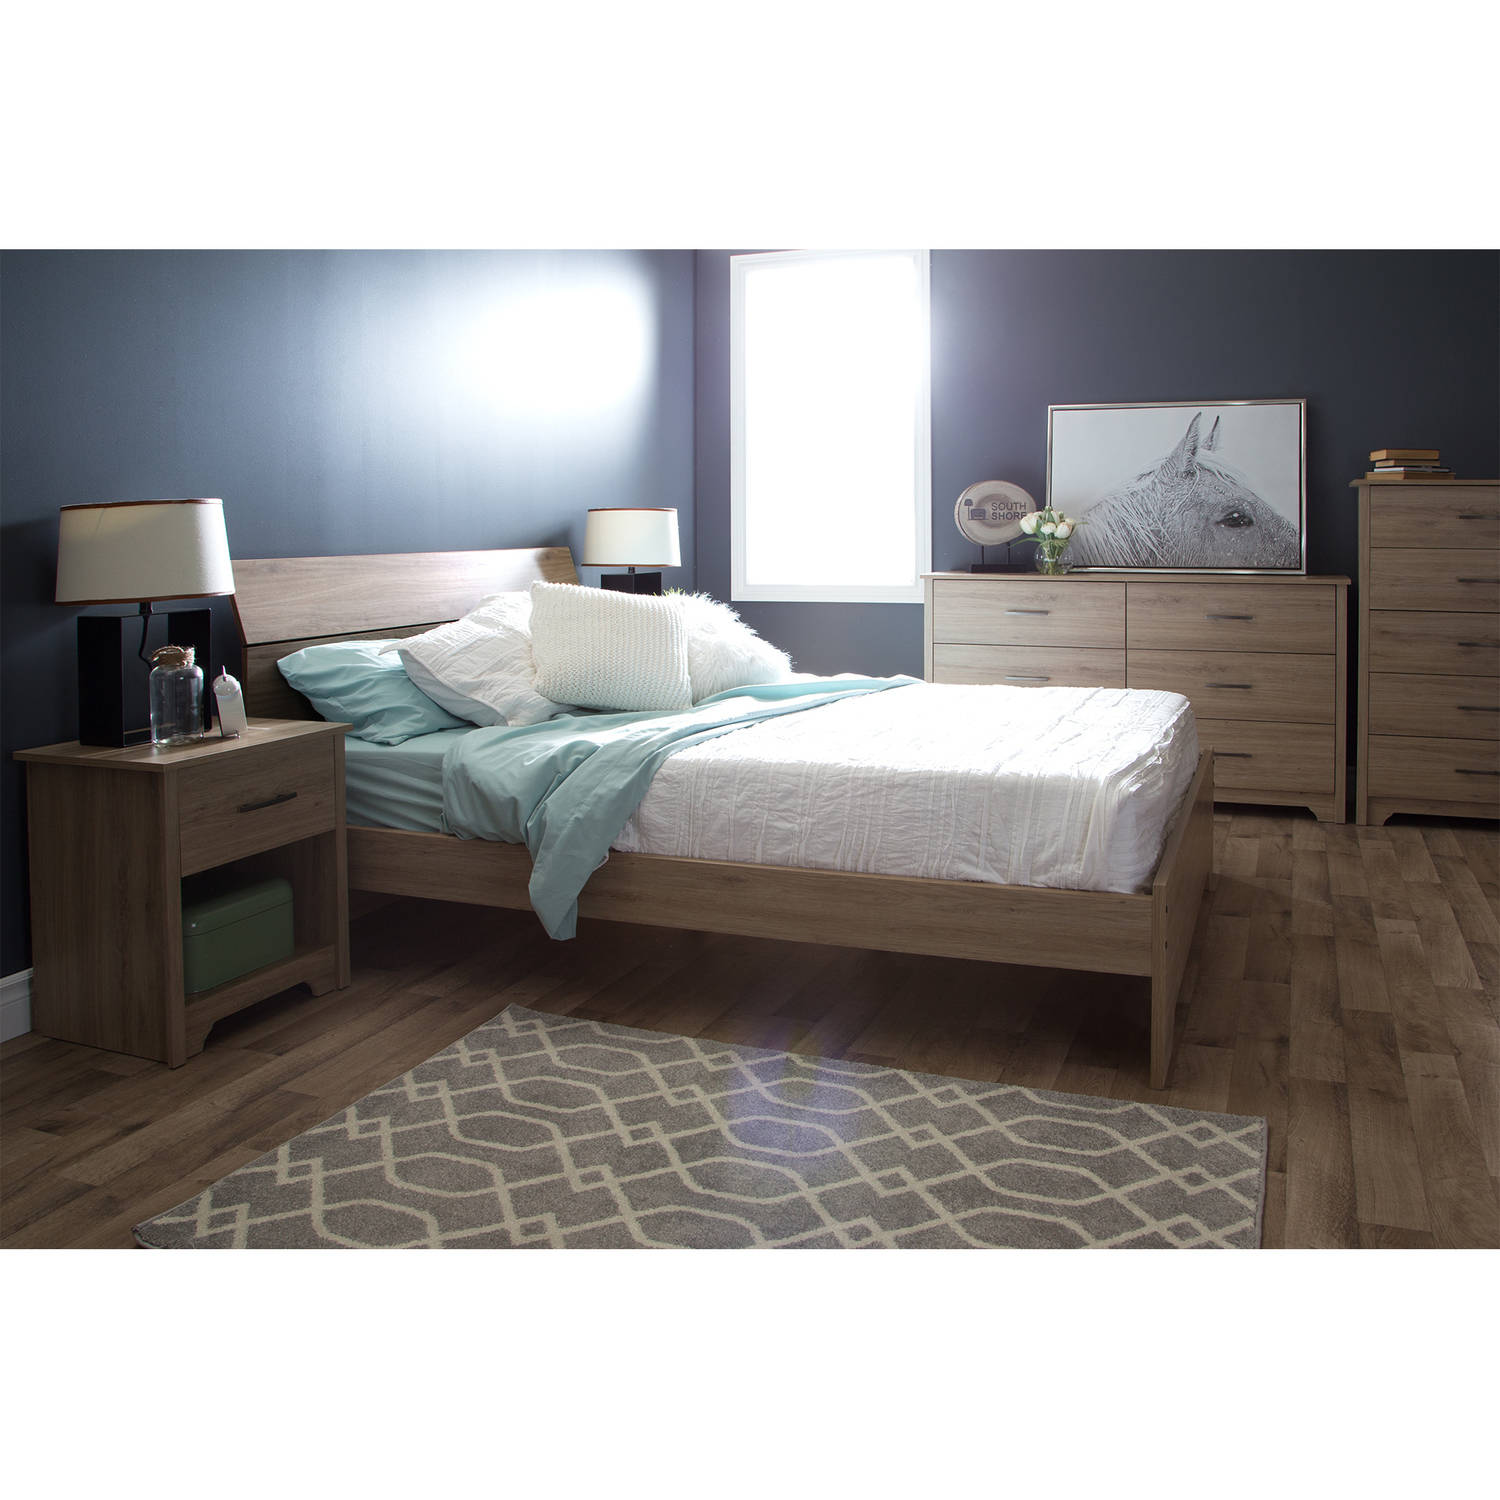 South shore fusion bedroom furniture collection for South shore bedroom set walmart